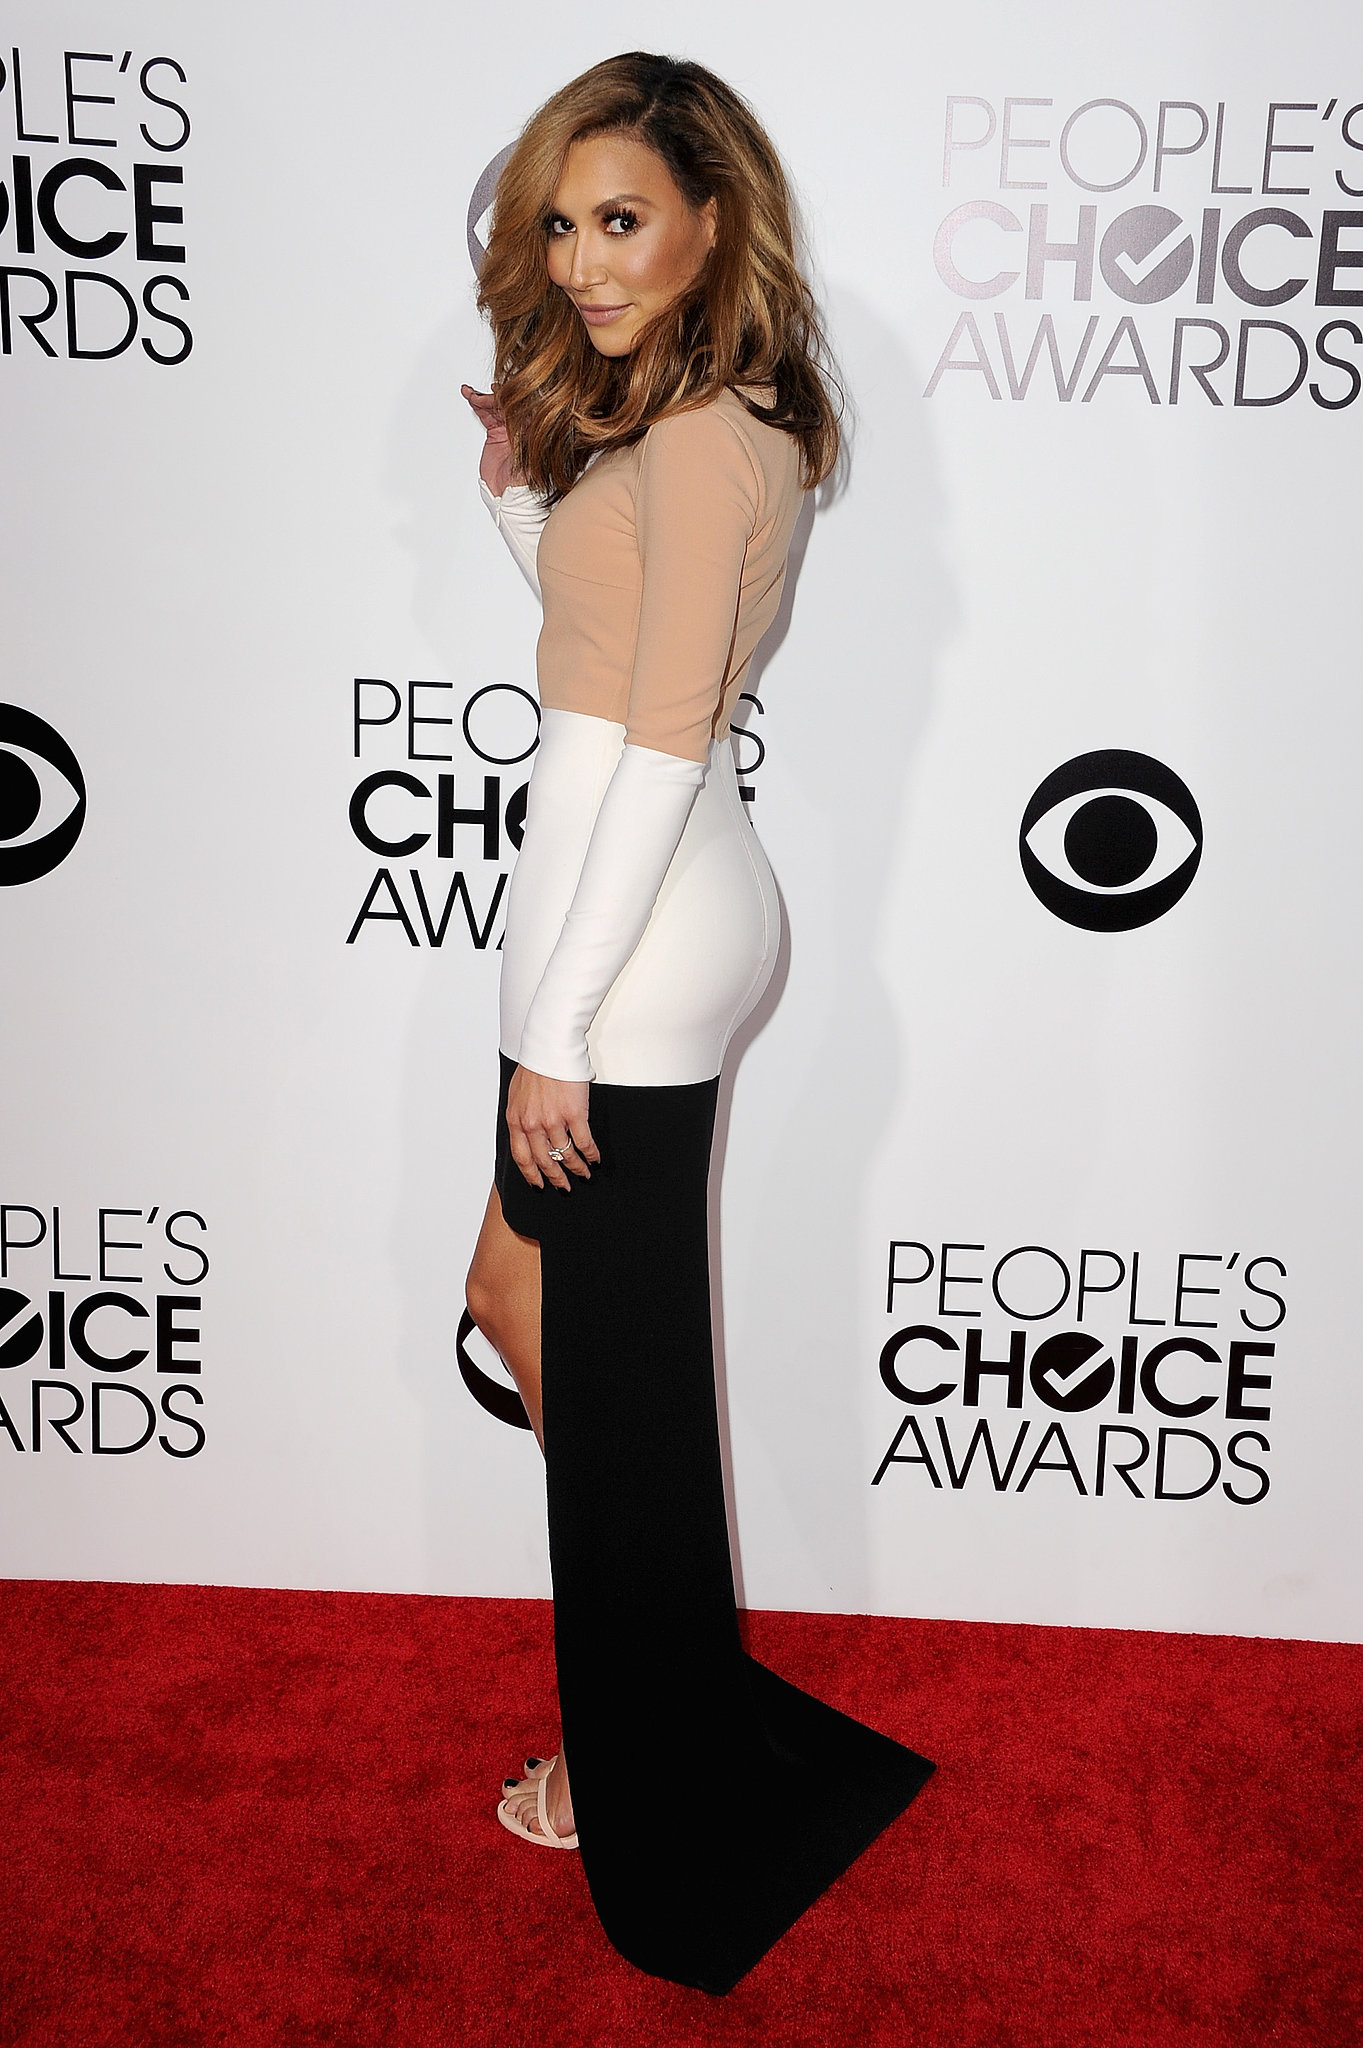 Naya Rivera debuted a new, lighter hair shade on the People's Choice Awards red carpet.